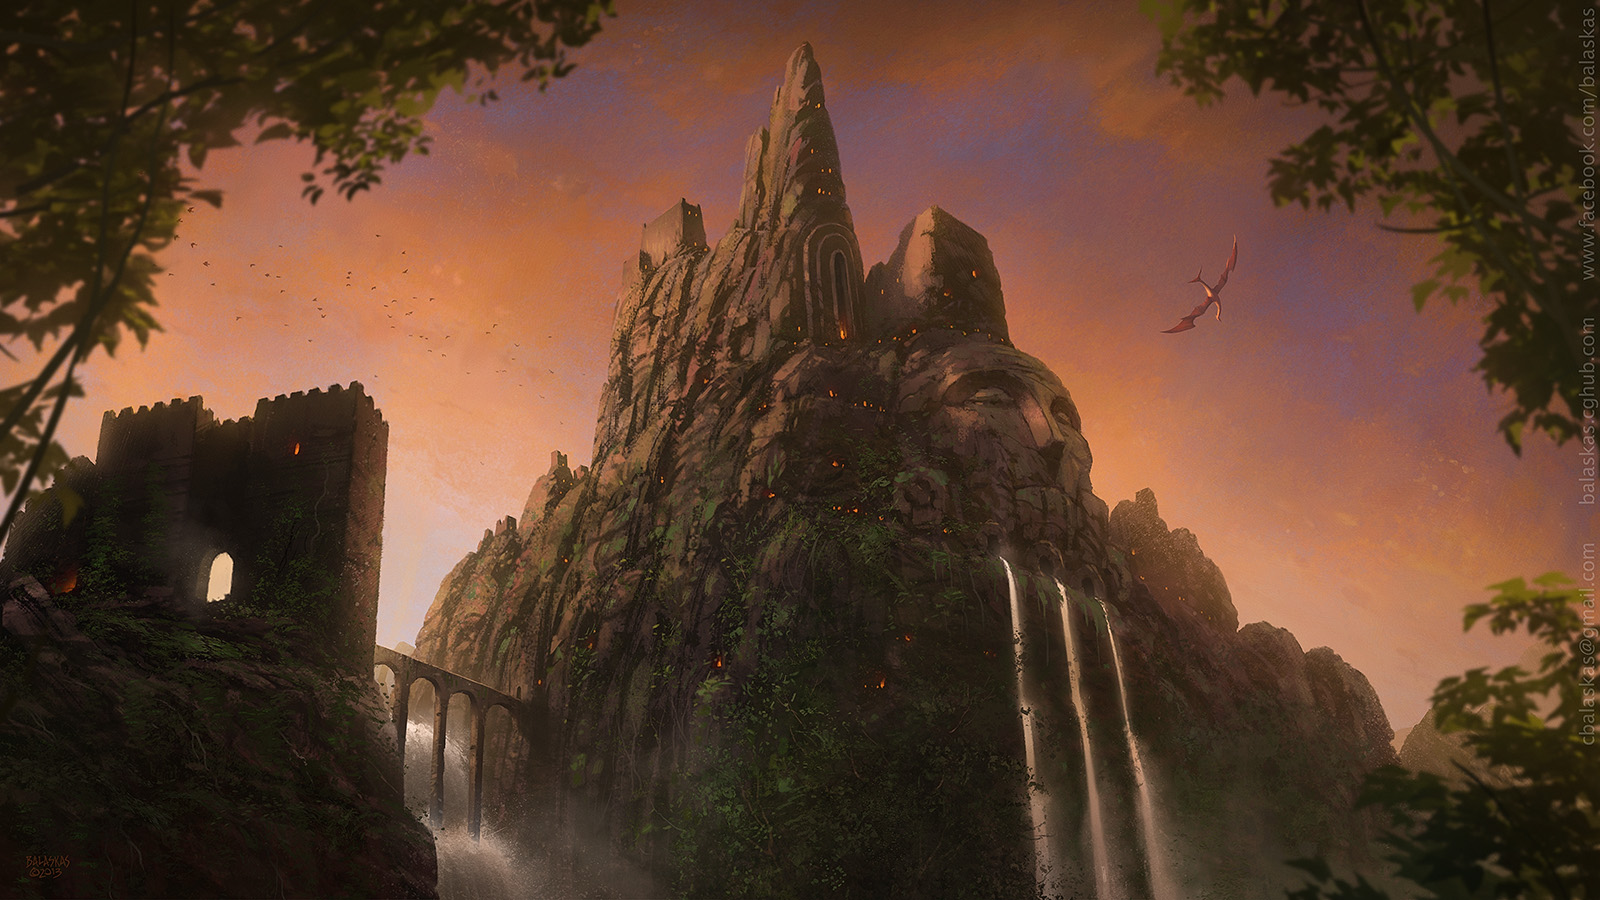 Temple of Kraan by Balaskas